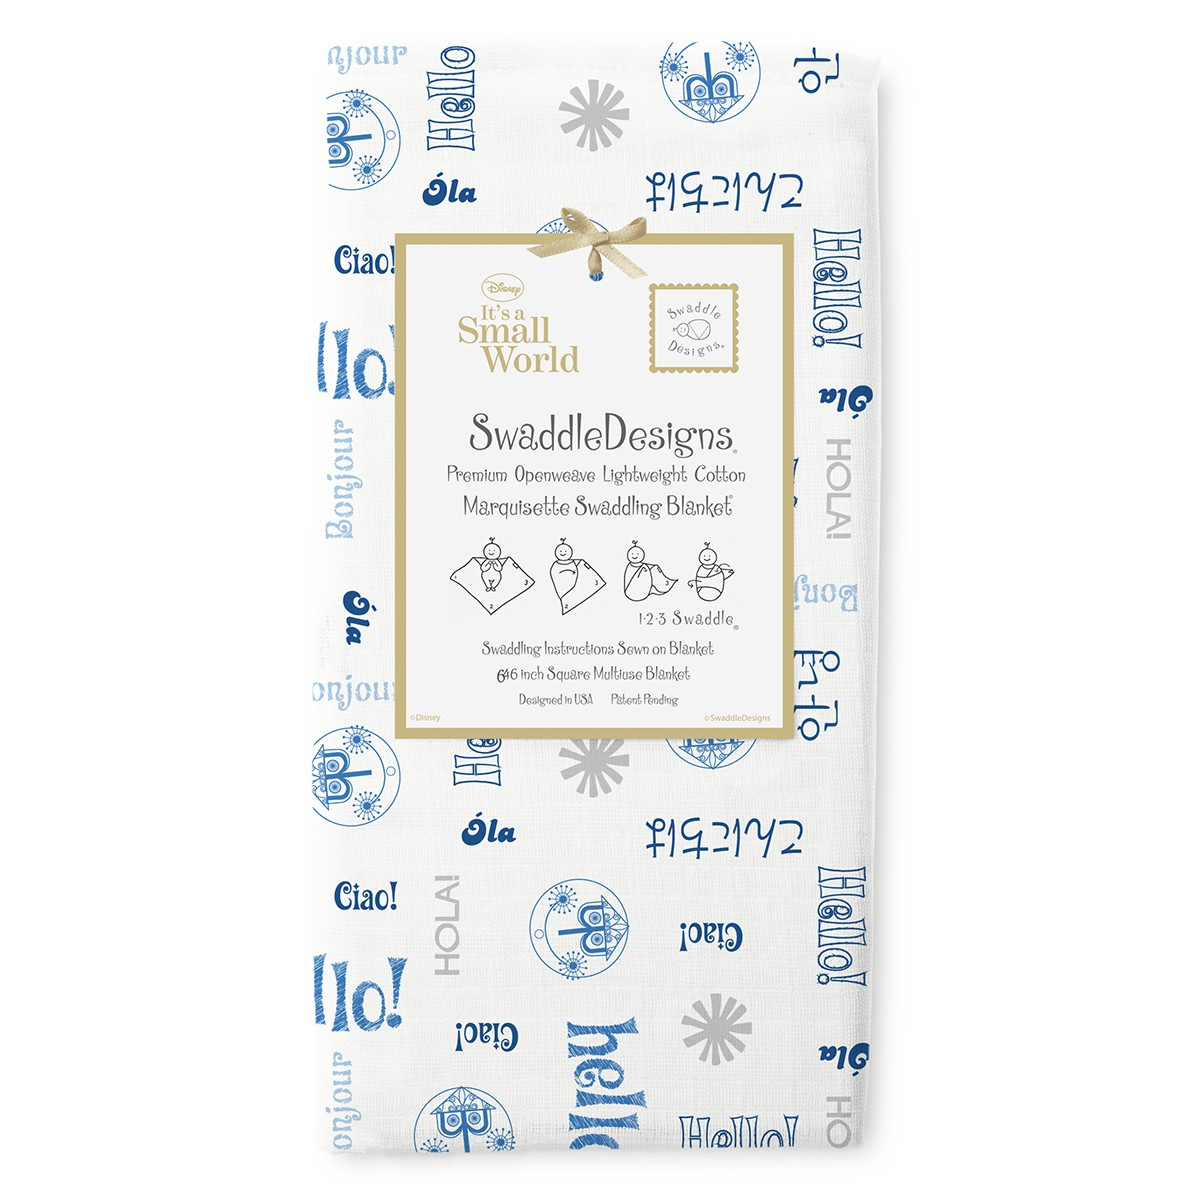 Its A Small World Blue Swaddle Blanket Swaddle Designs